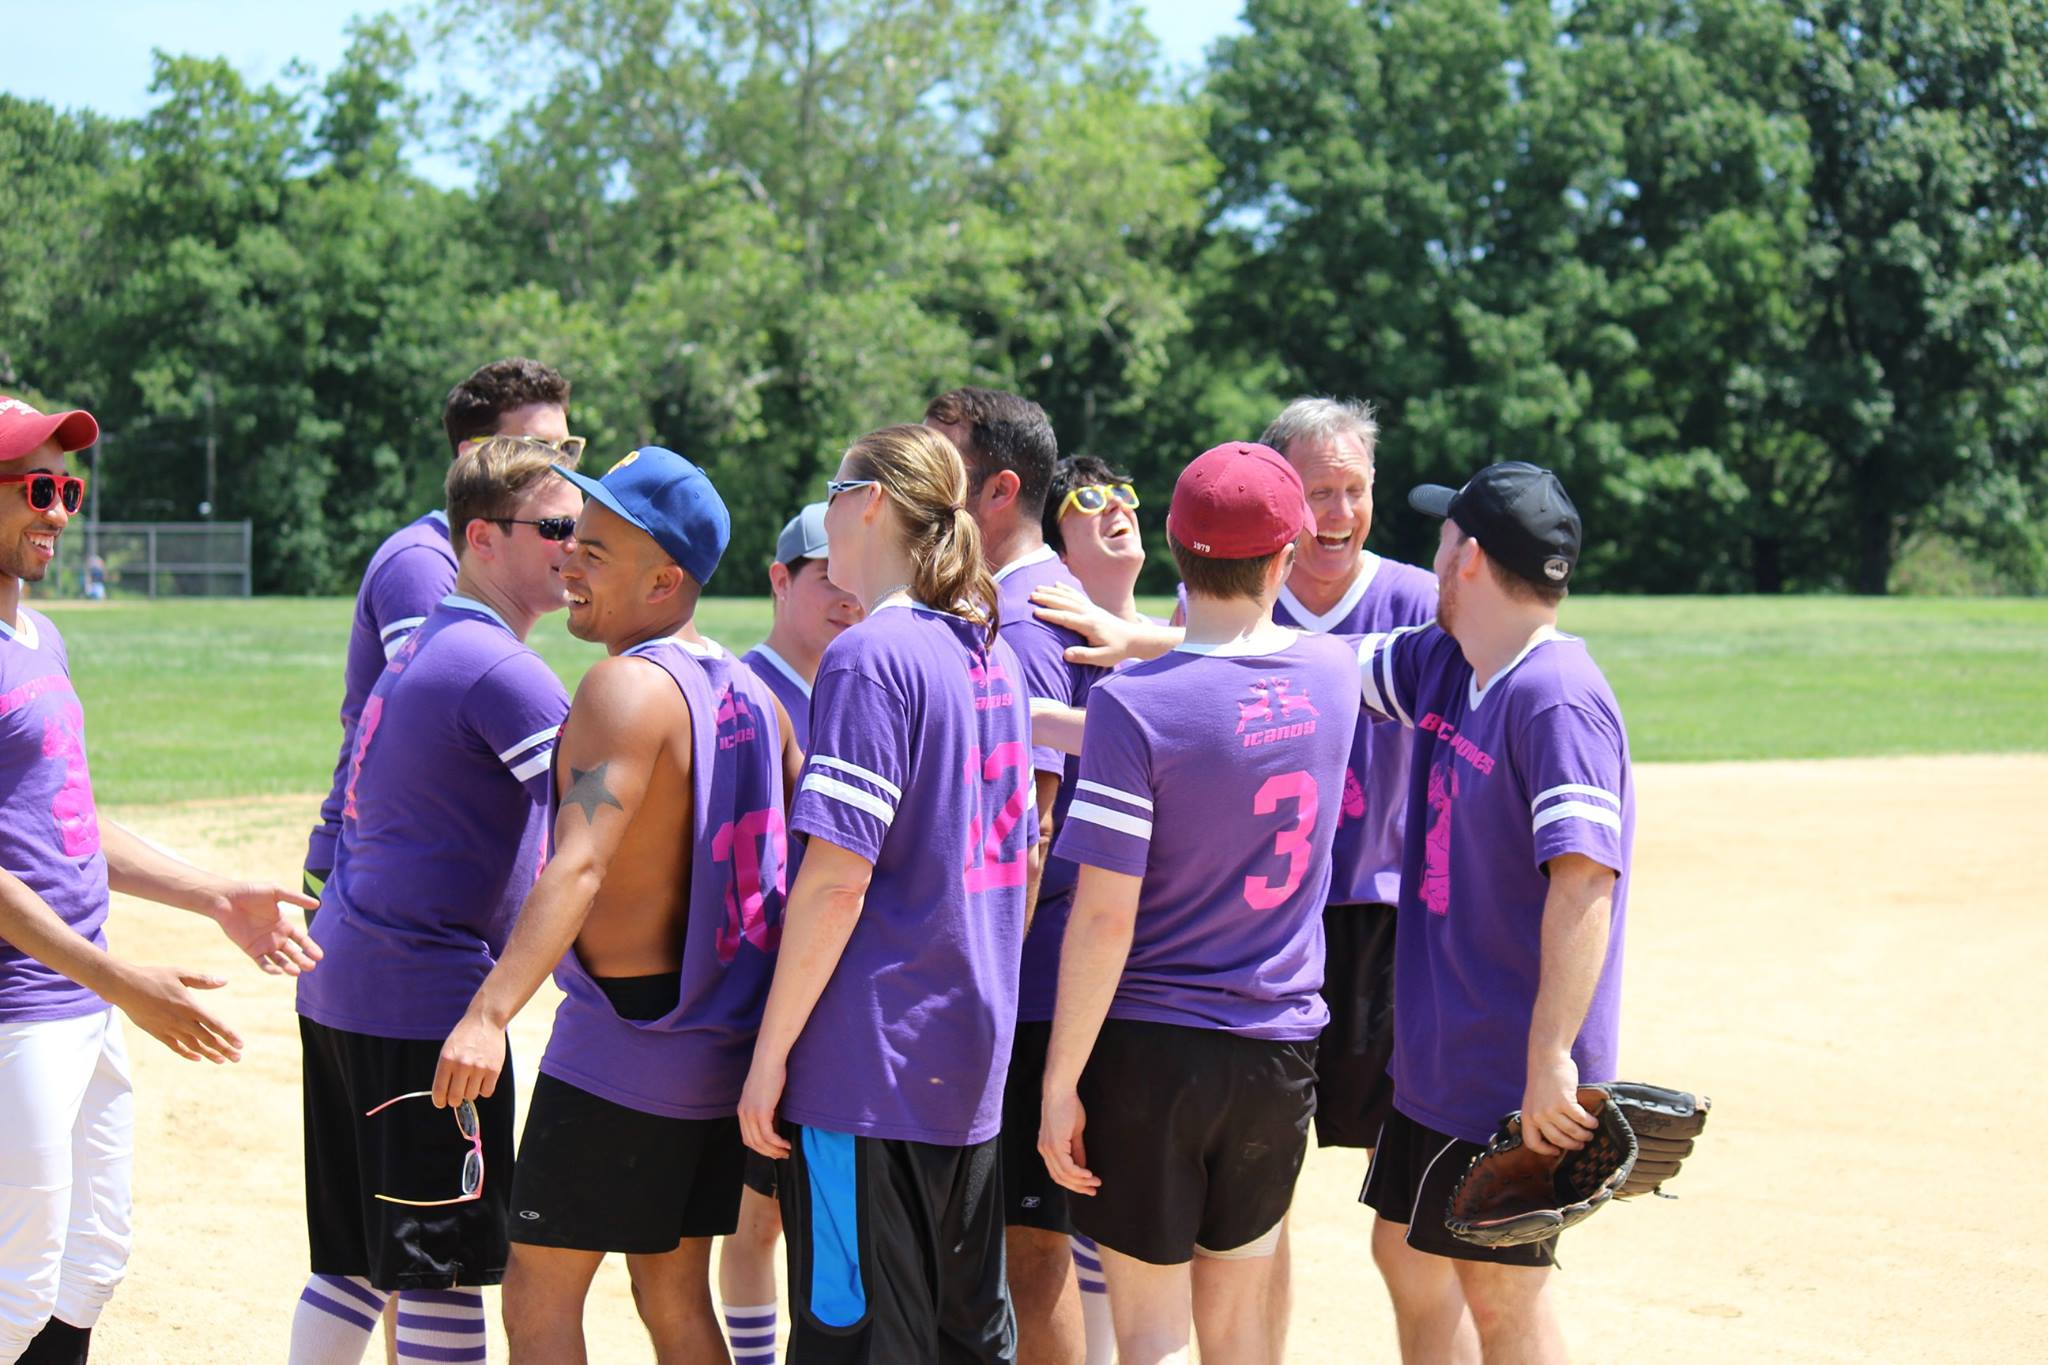 About the Recreational Division : City of Brotherly Love